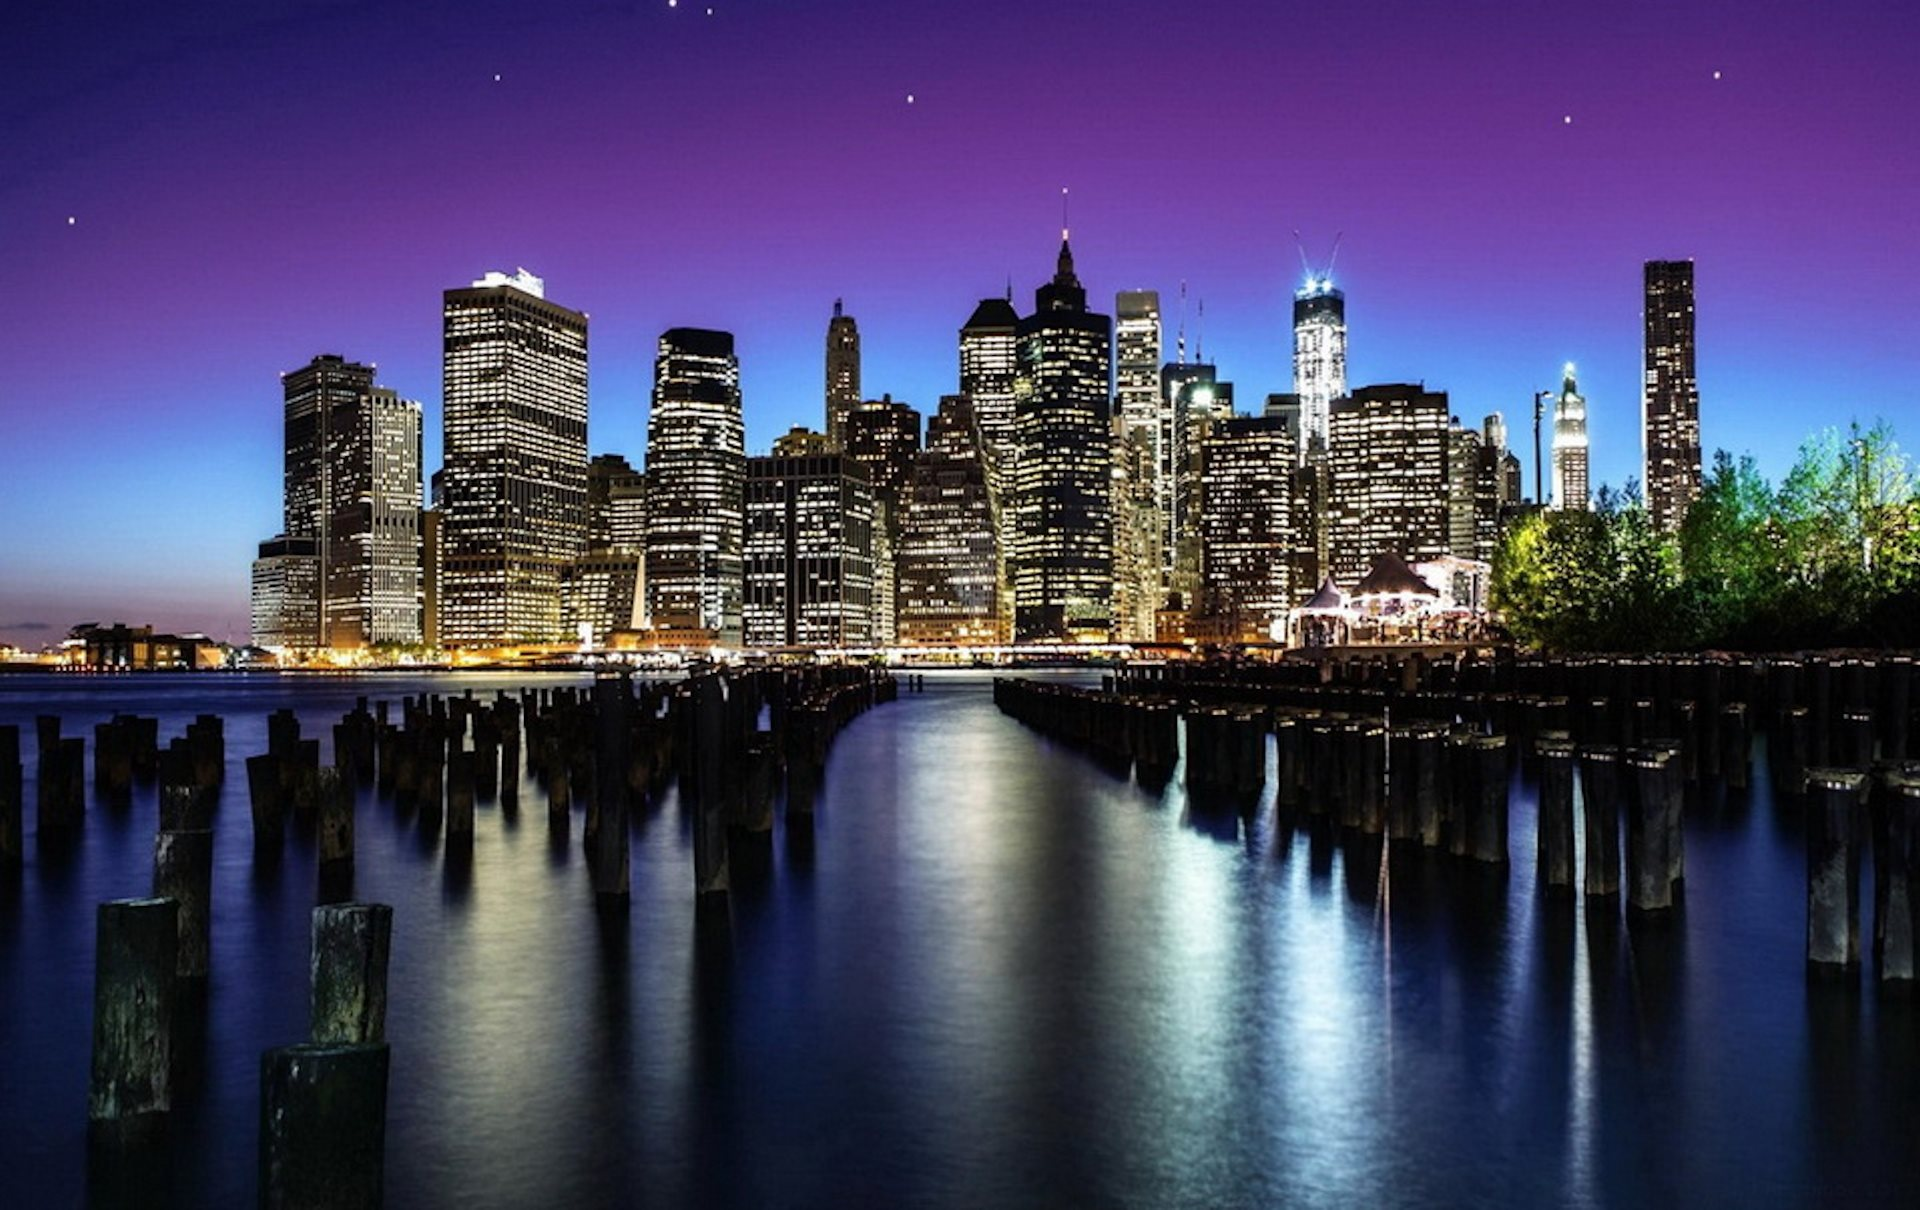 New York Night View Wallpaper 1920x1210